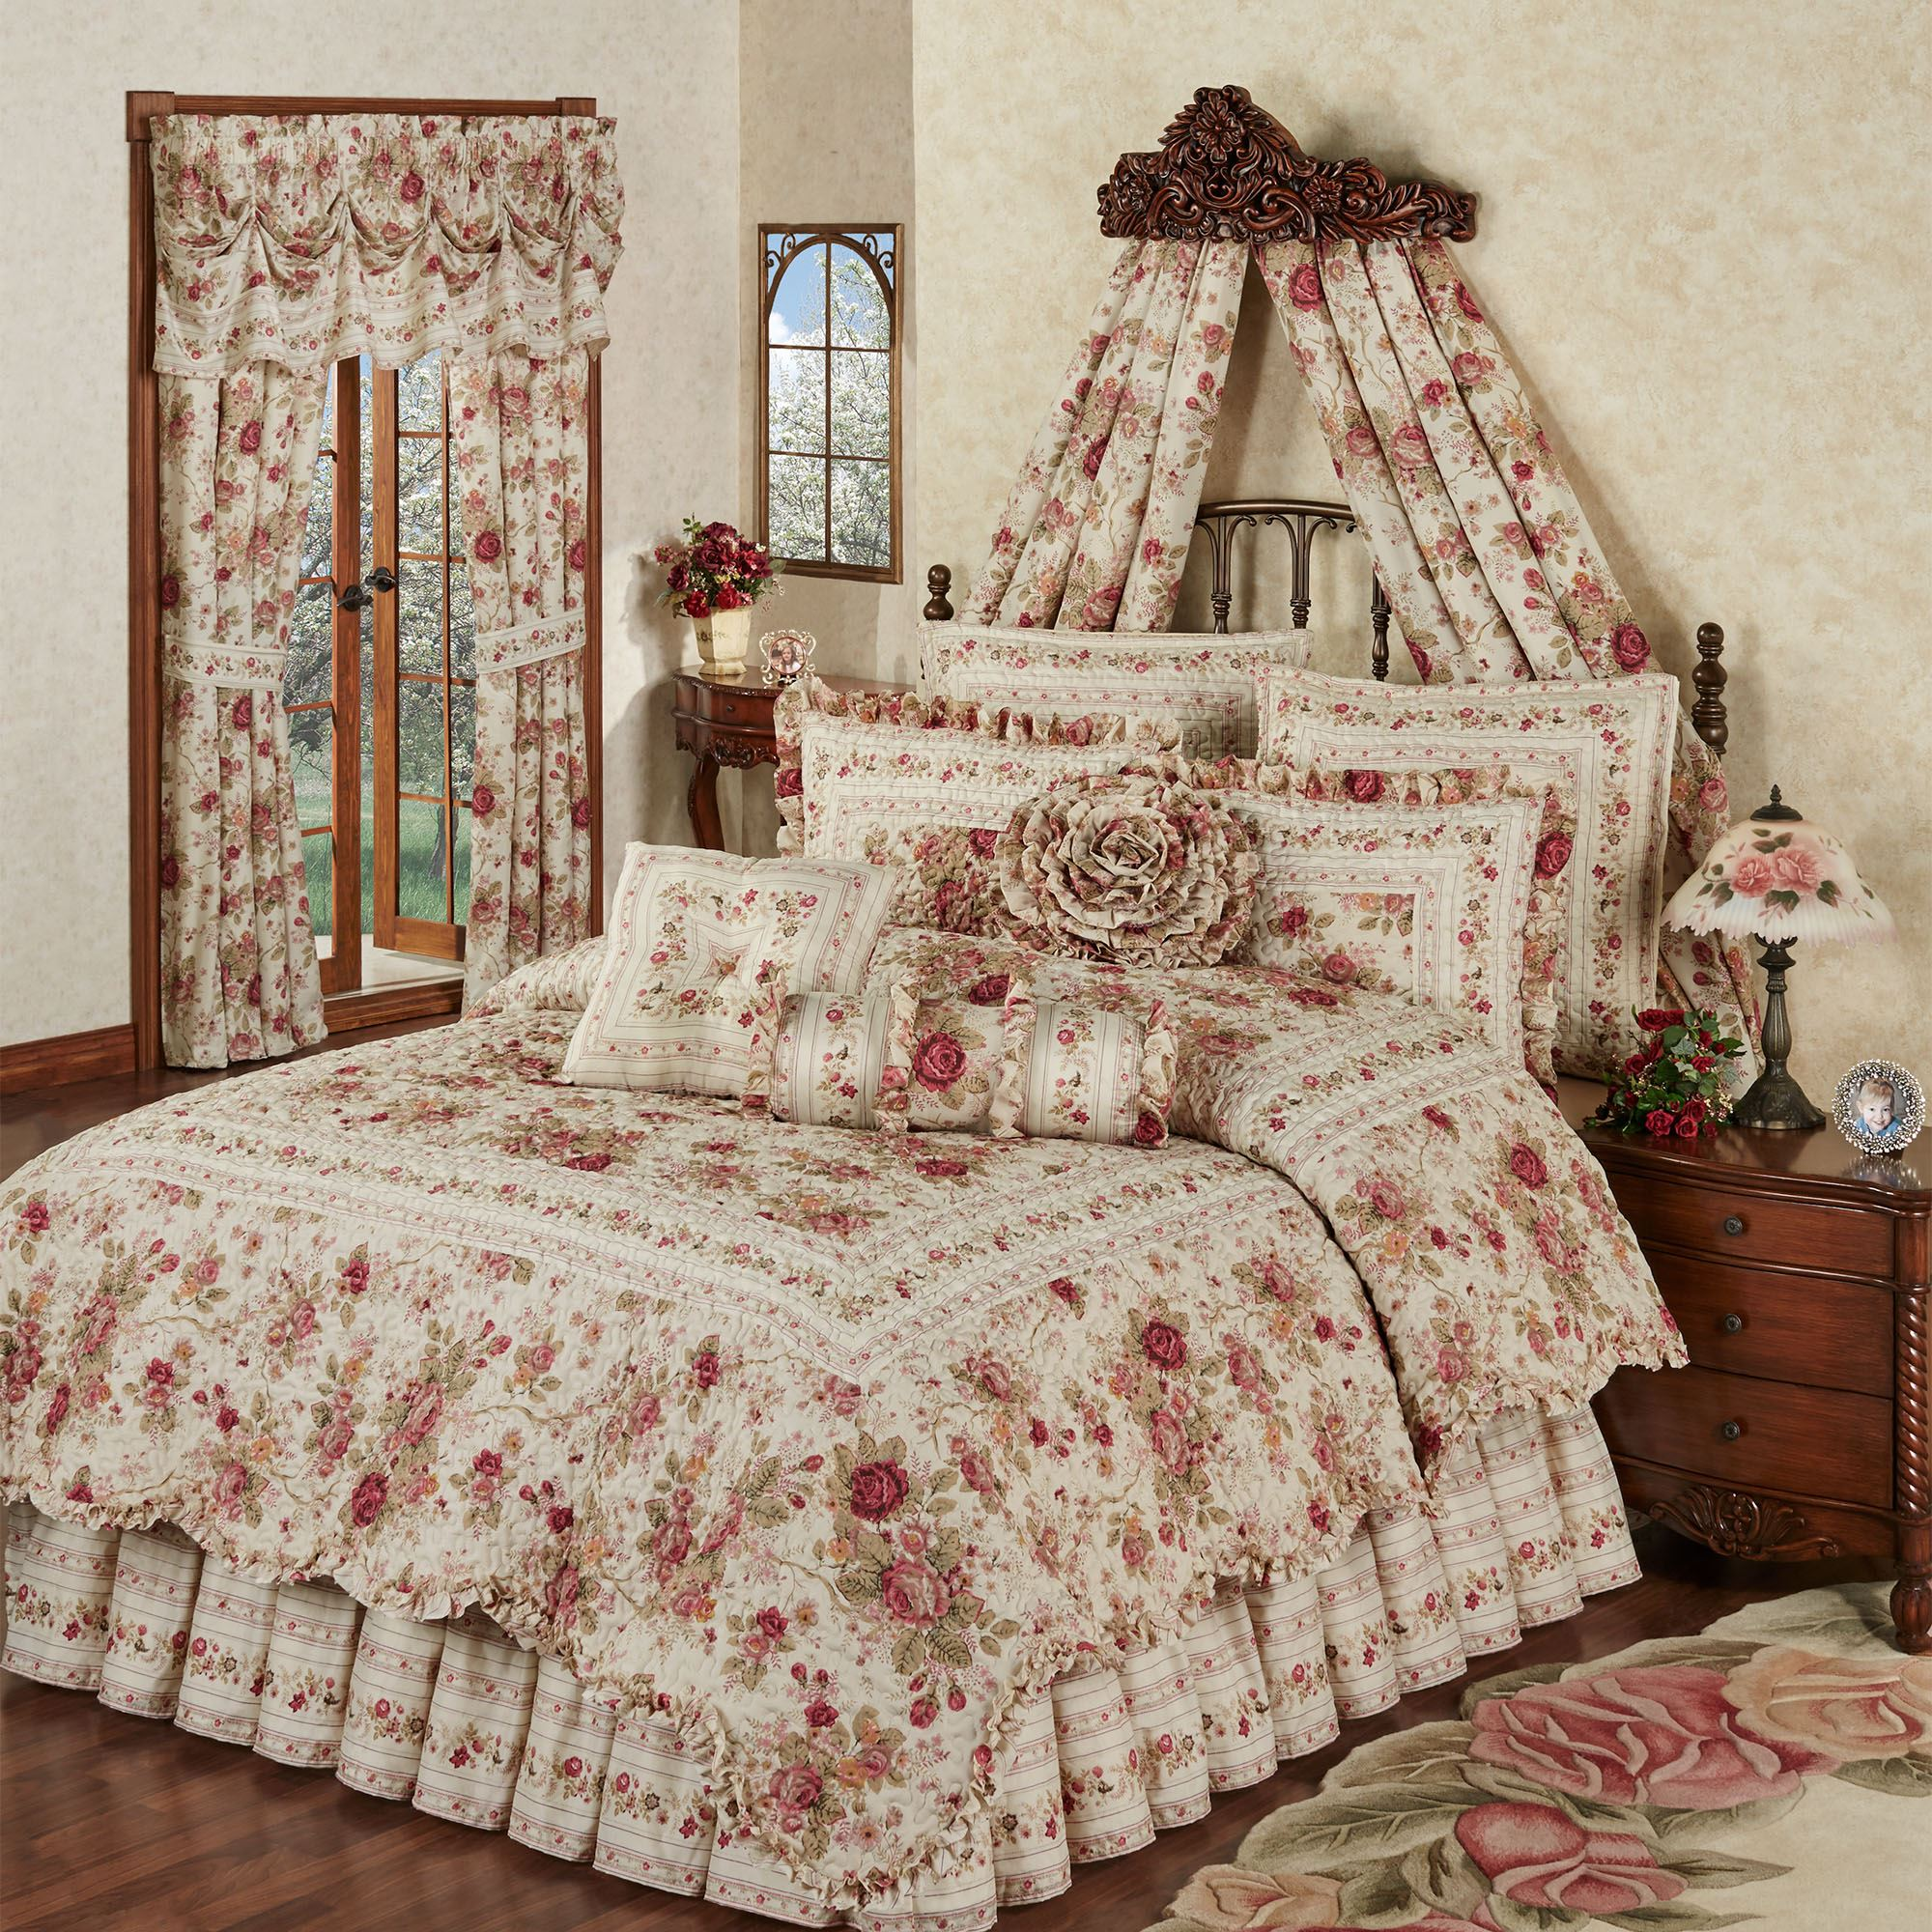 heirloom rose 4 pc floral quilt set. Black Bedroom Furniture Sets. Home Design Ideas